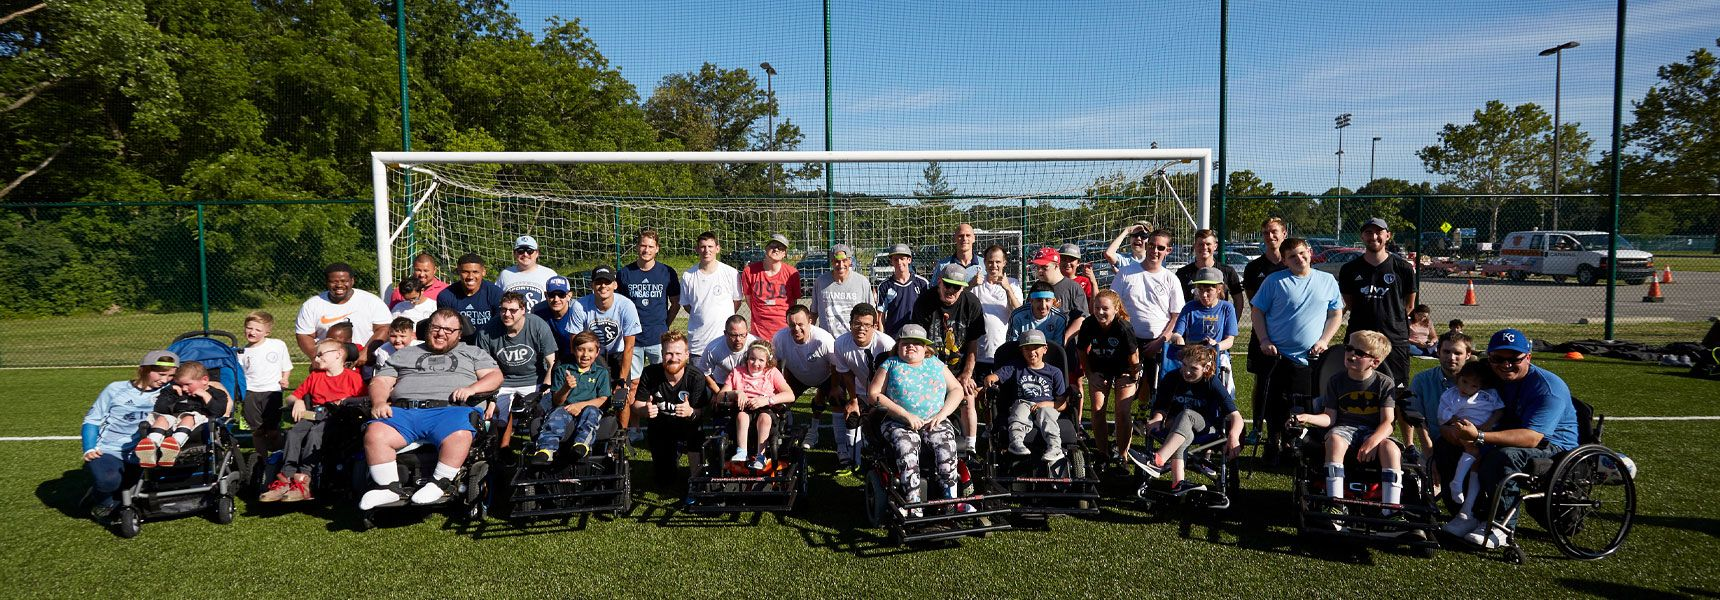 Group of children with disabilities at the Sporting KC Soccer for All Abilities Clinic